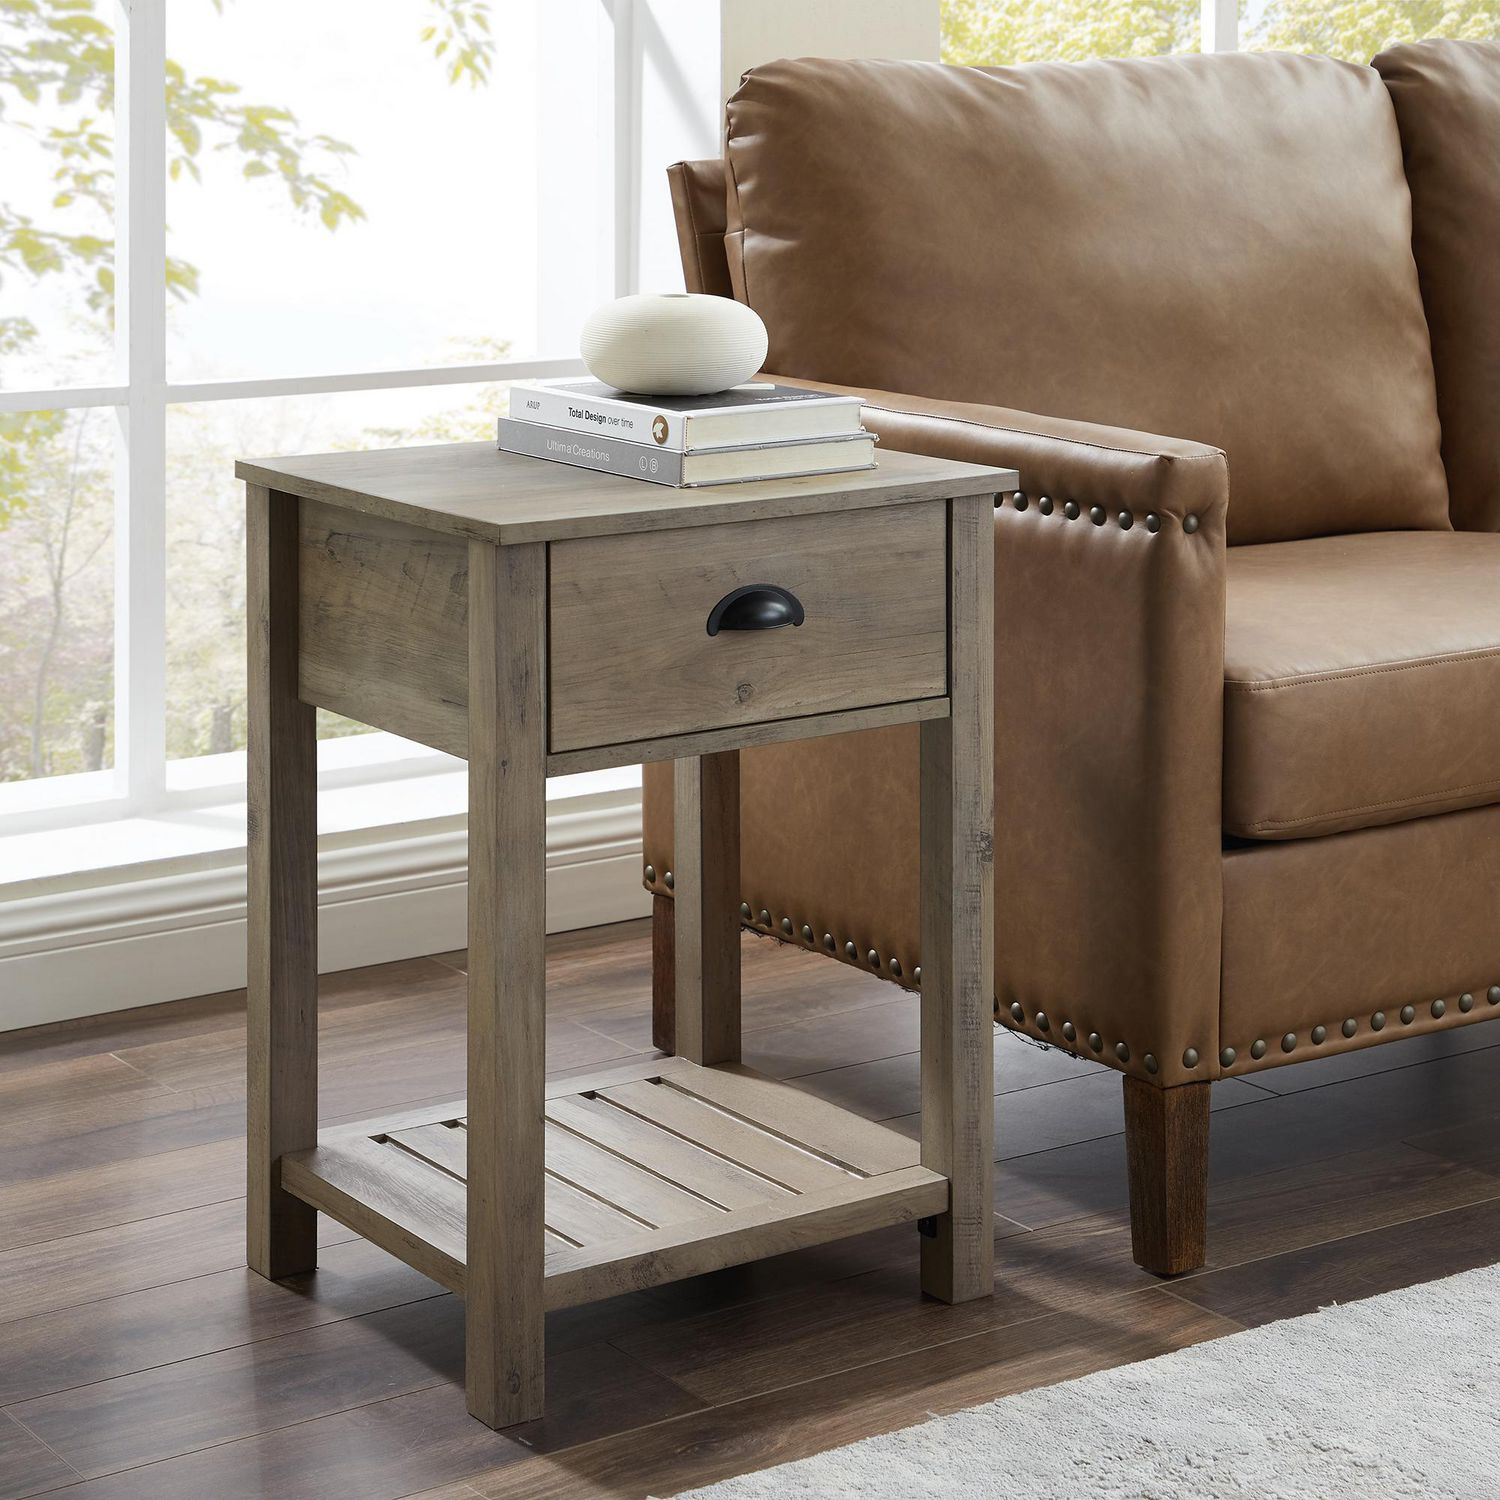 Country Farmhouse Side Table And Nightstand With Storage Drawer Grey Wash Walmart Canada